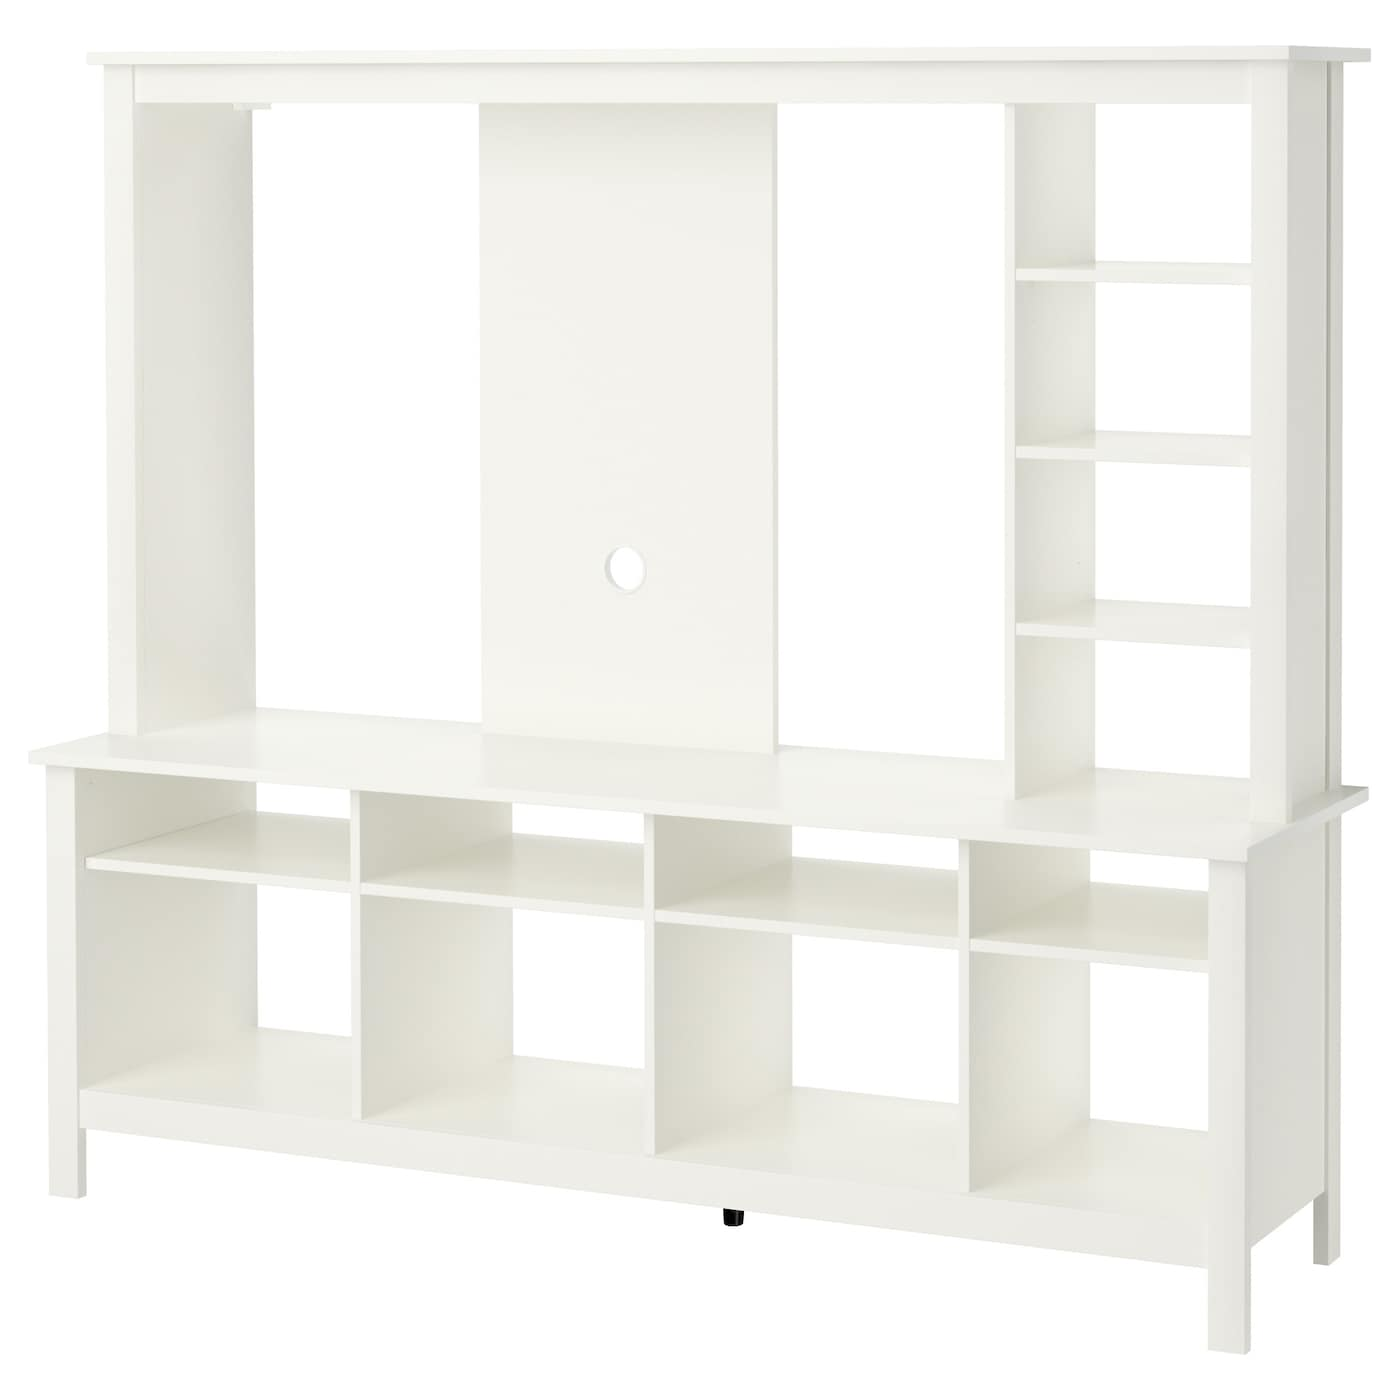 Tomn s tv storage unit white 183x48x163 cm ikea - Ikea tv wand ...